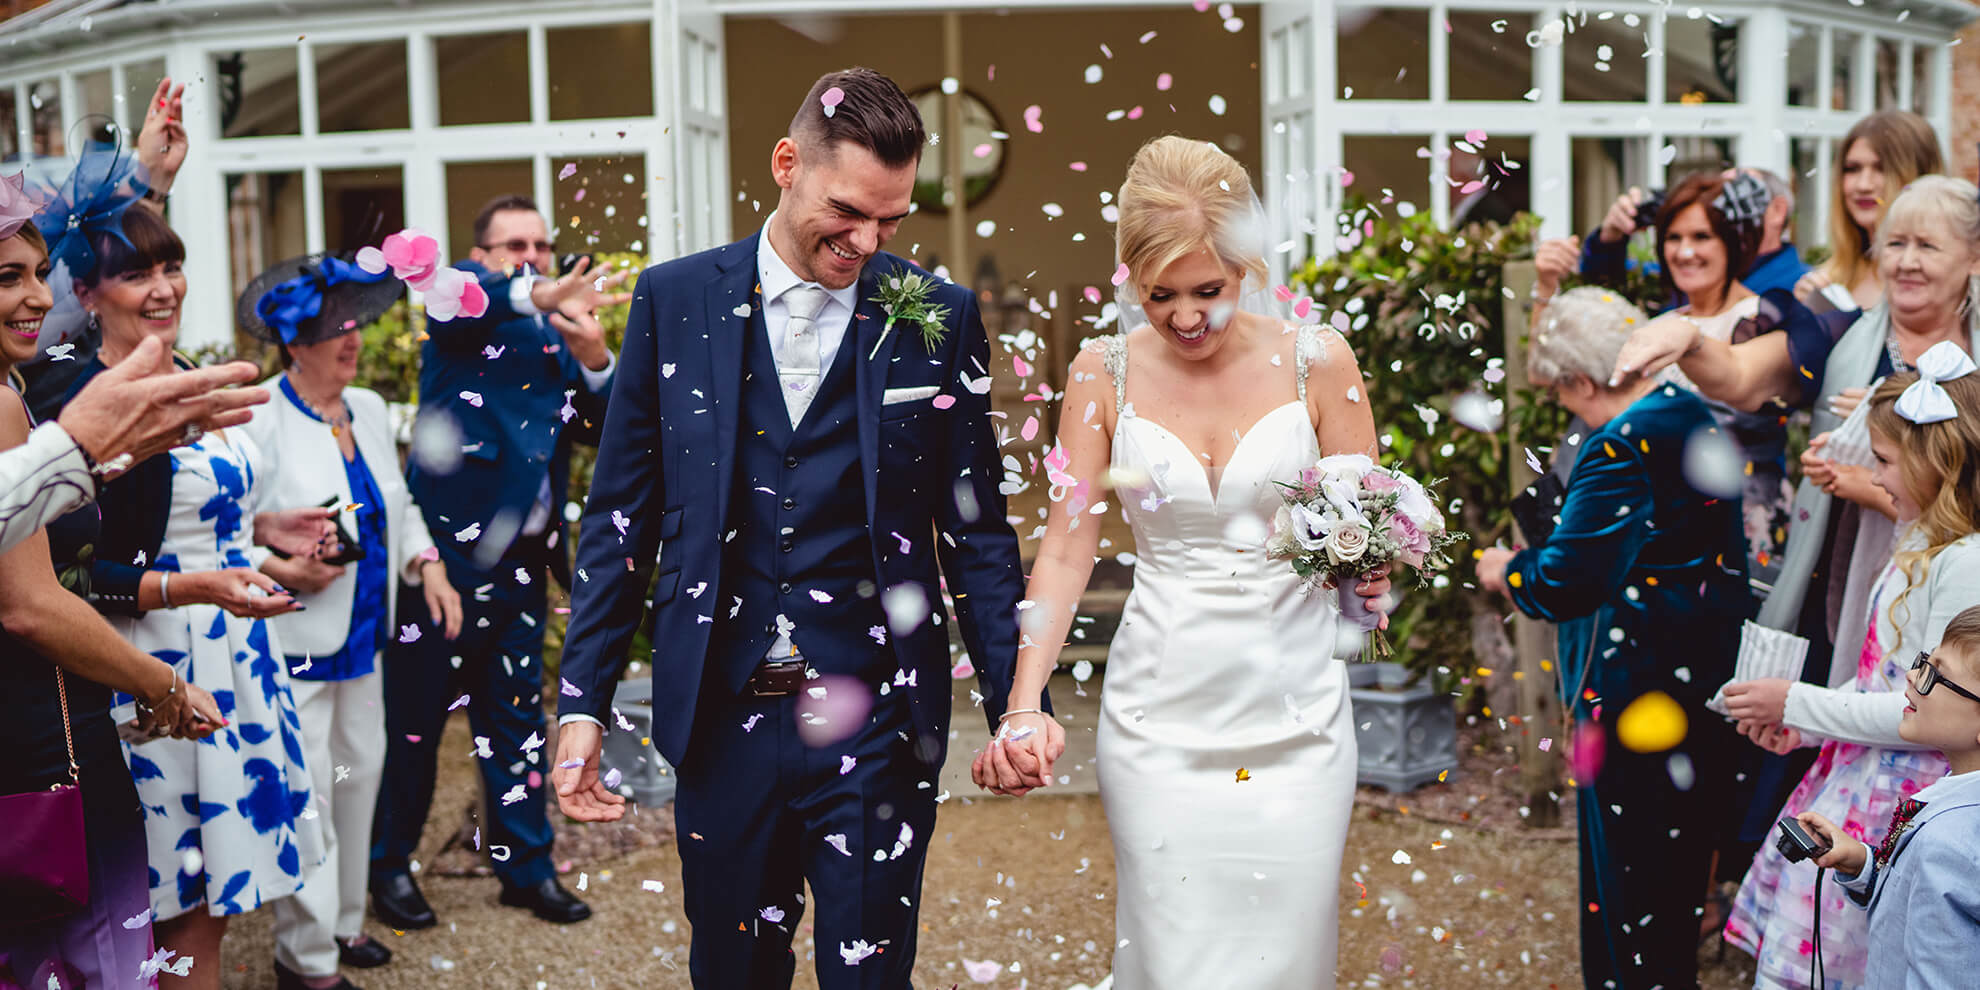 The happy newlyweds leave the wedding ceremony as guests congratulate them with wedding confetti